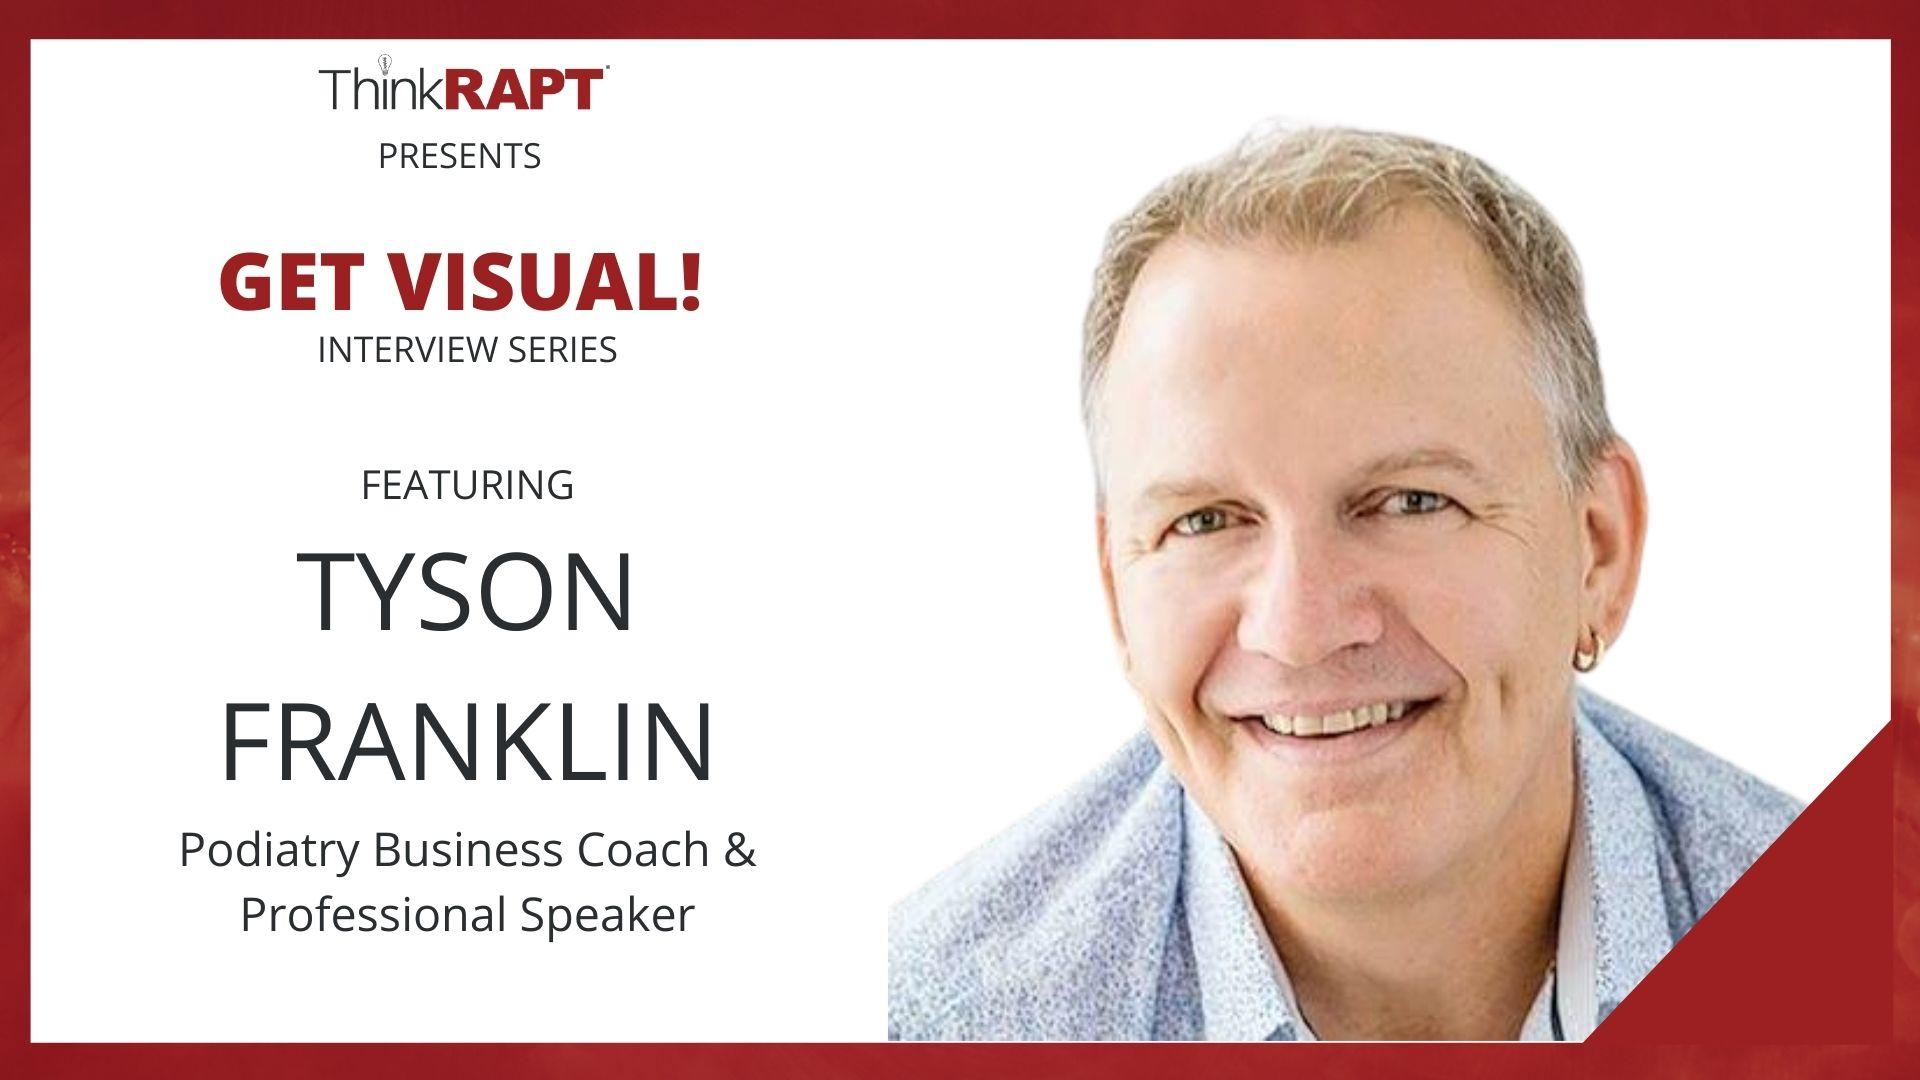 A man with short blond hair smiles a the camera. The text next to him reads Think RAPT presents Get Visual! Interview Series Featuring Tyson Franklin, Podiatry Business Coach, Author, Speaker